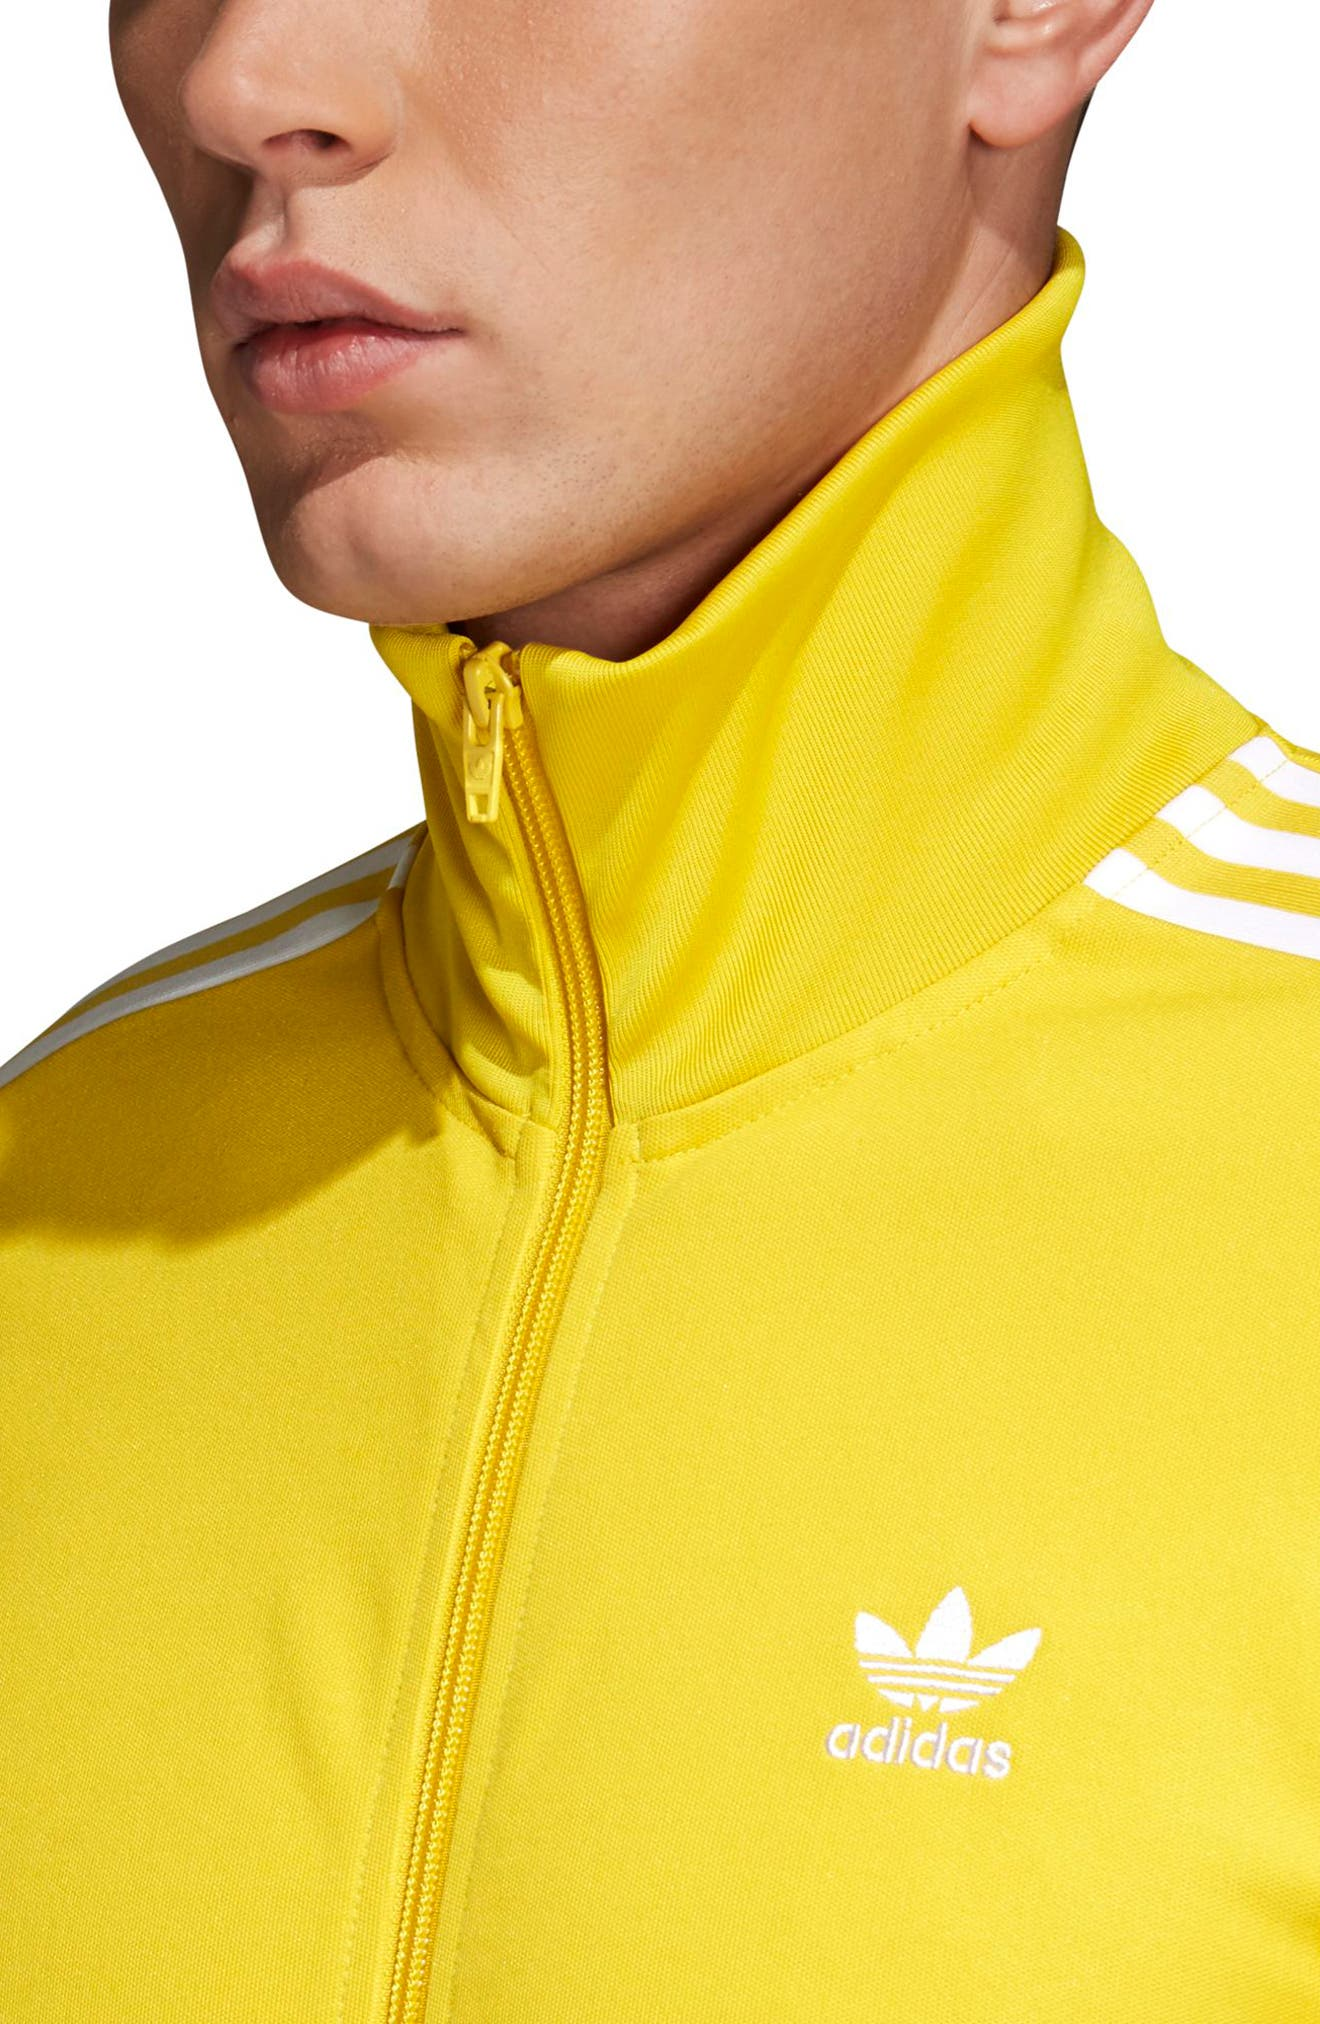 adidas Original Franz Beckenbauer Track Jacket,                             Alternate thumbnail 4, color,